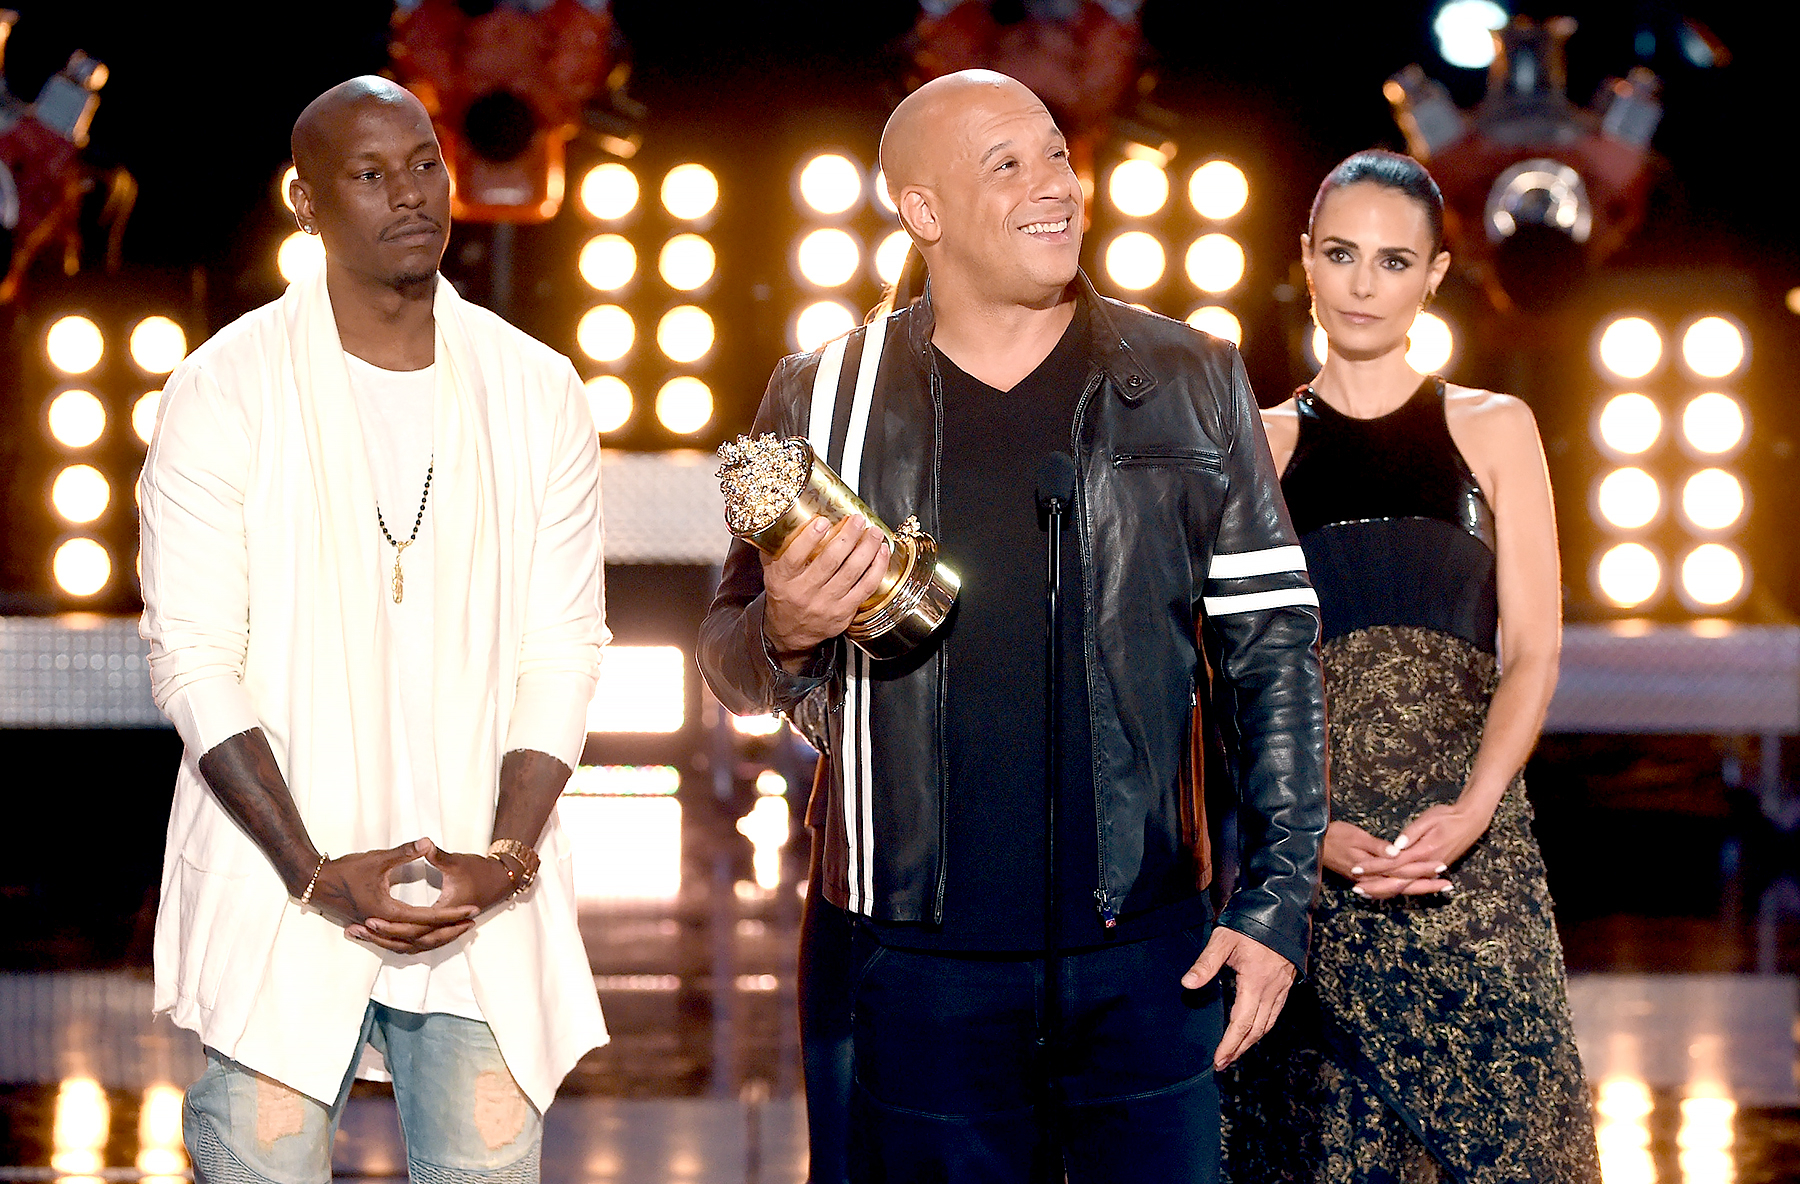 Tyrese Gibson, Vin Diesel and Jordana Brewster accept the MTV Generation Award for 'The Fast and the Furious' franchise onstage during the 2017 MTV Movie And TV Awards at The Shrine Auditorium on May 7, 2017 in Los Angeles, California.